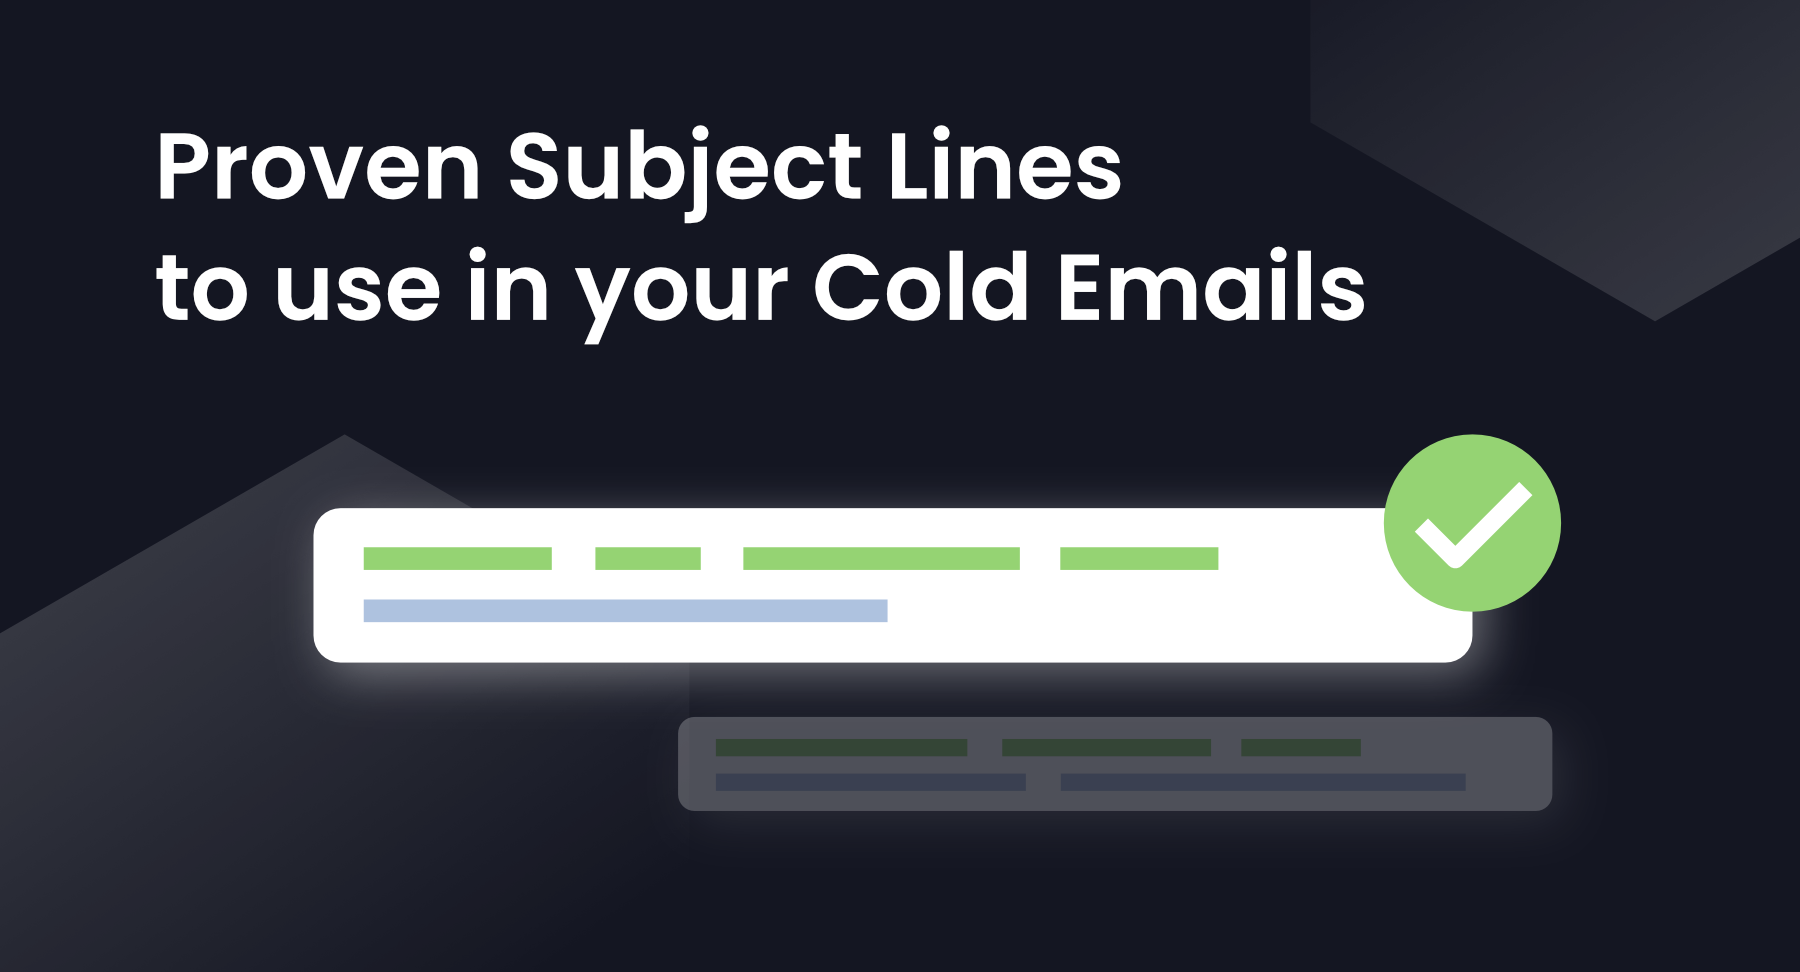 Proven Subject Lines To Use in Your Cold Emails